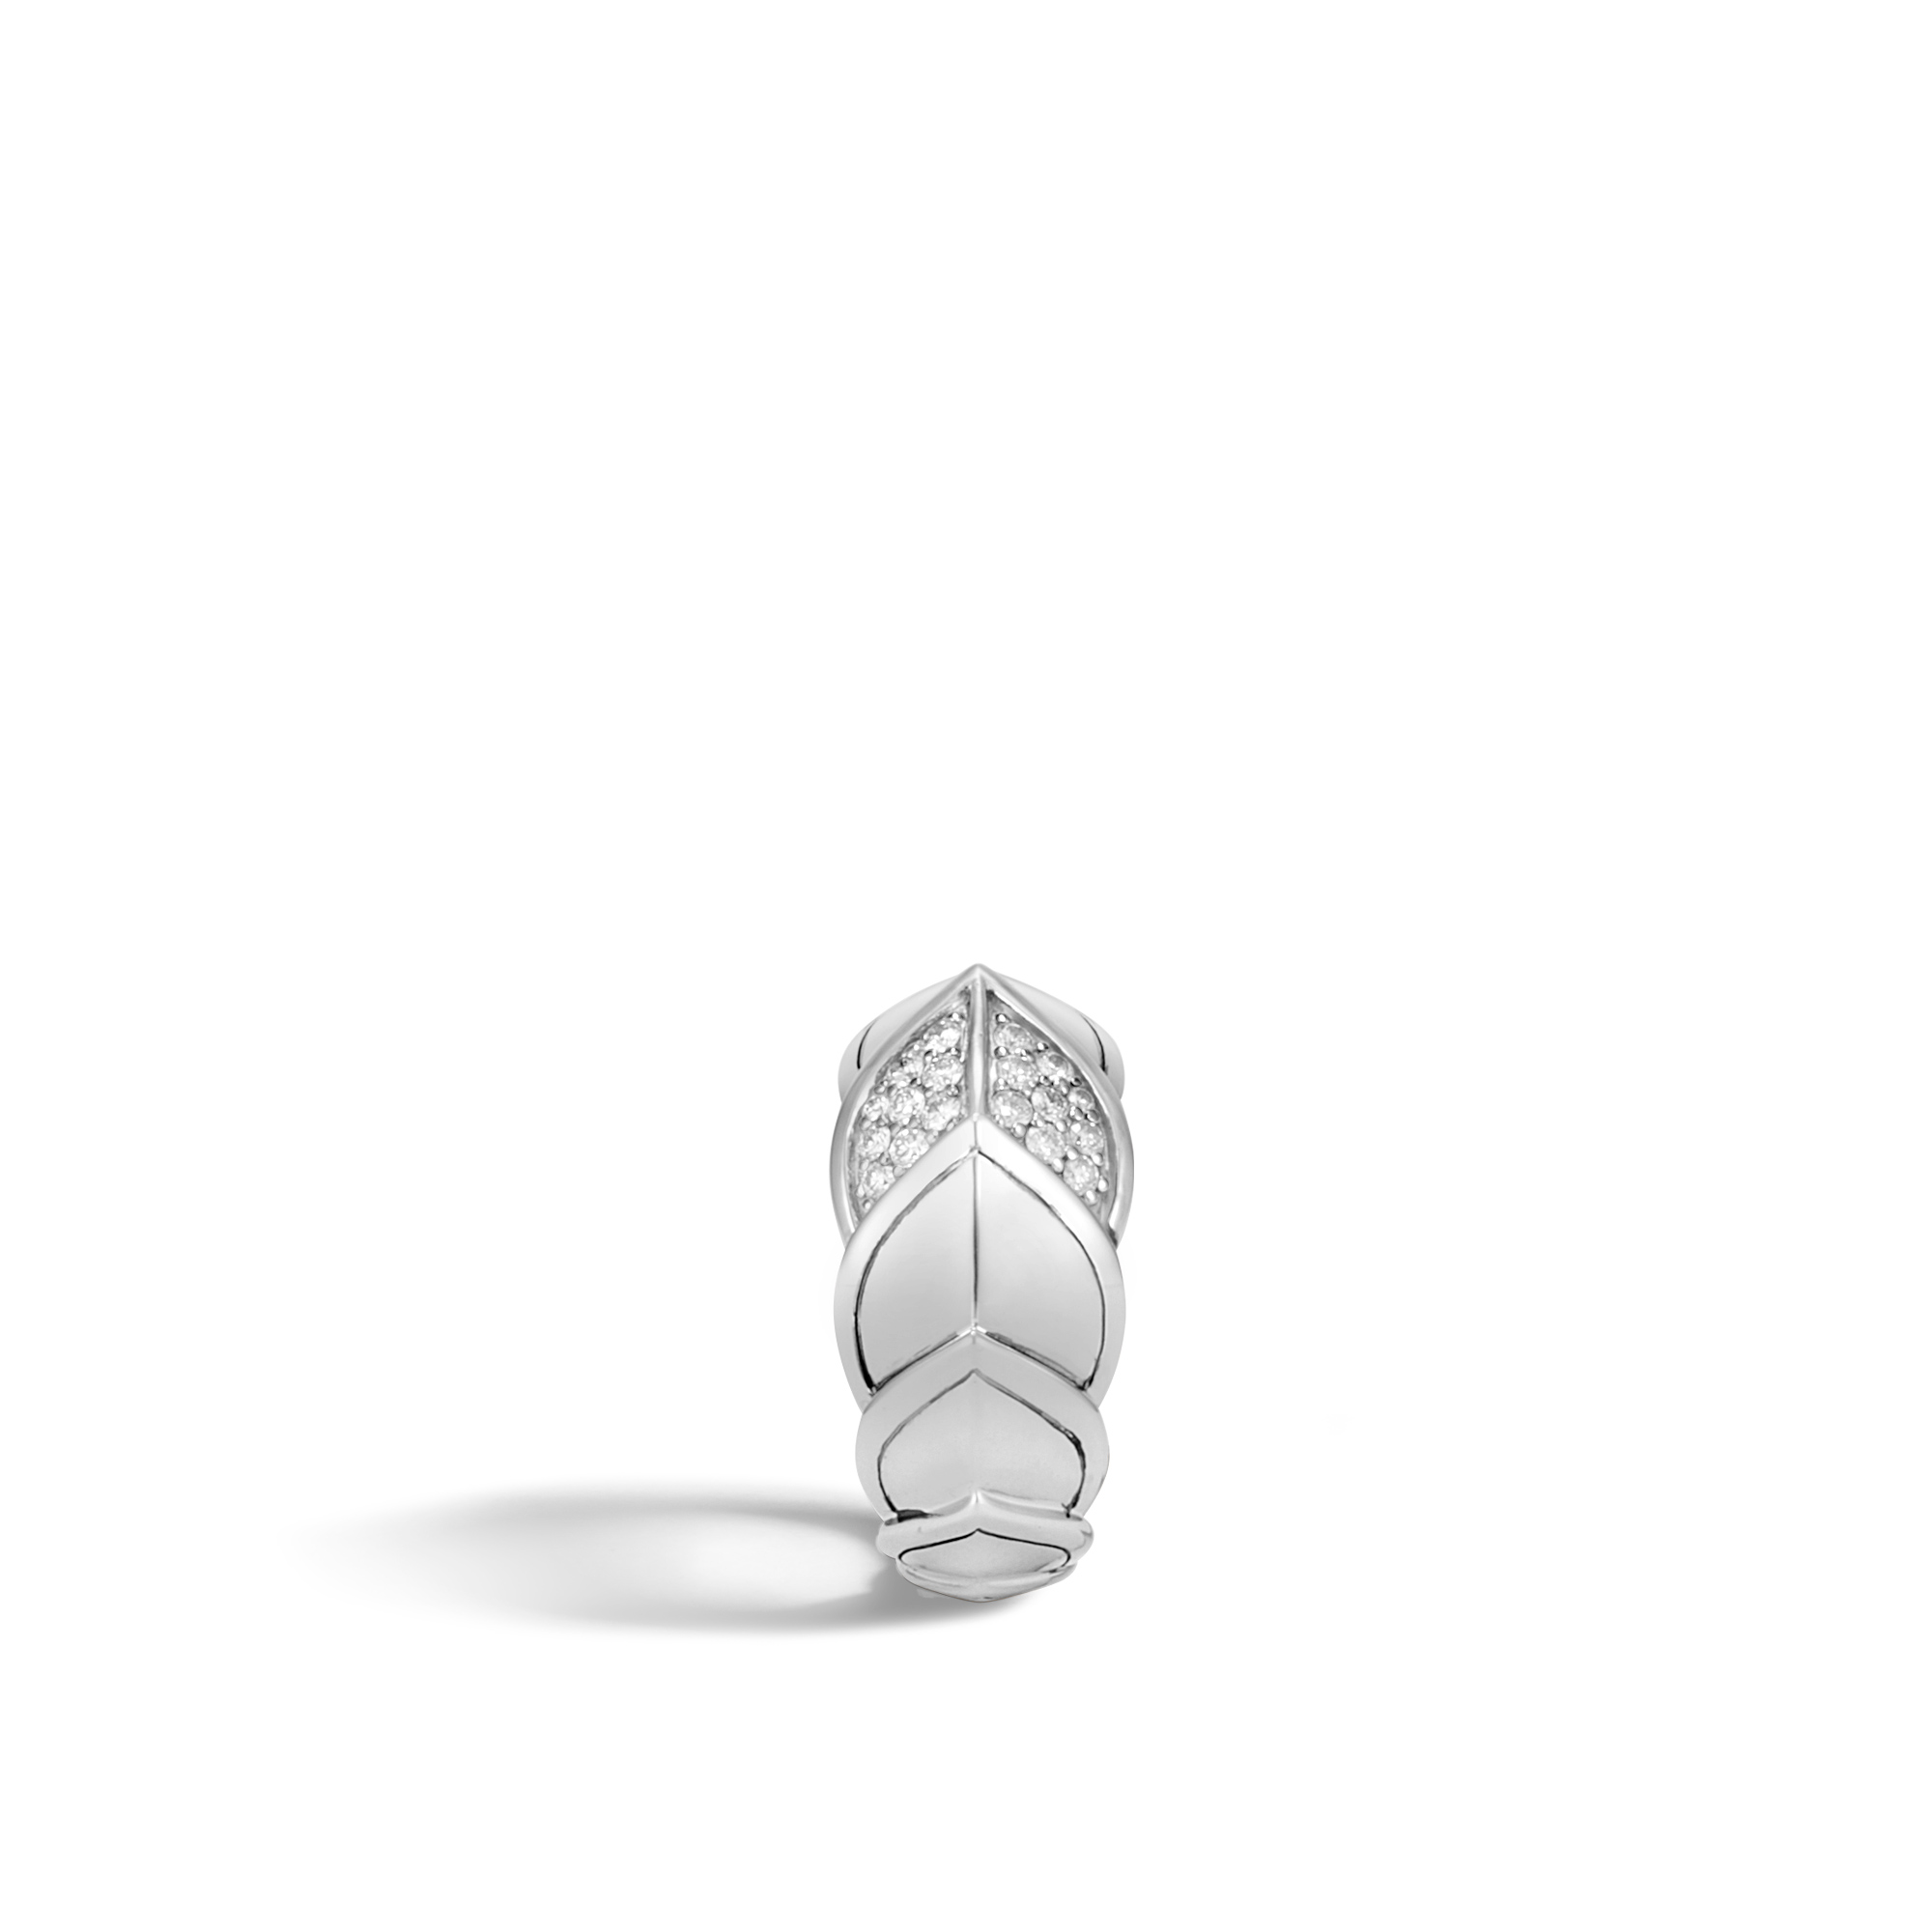 Legends Naga 11.5MM Ring in Silver with Diamonds, White Diamond, large